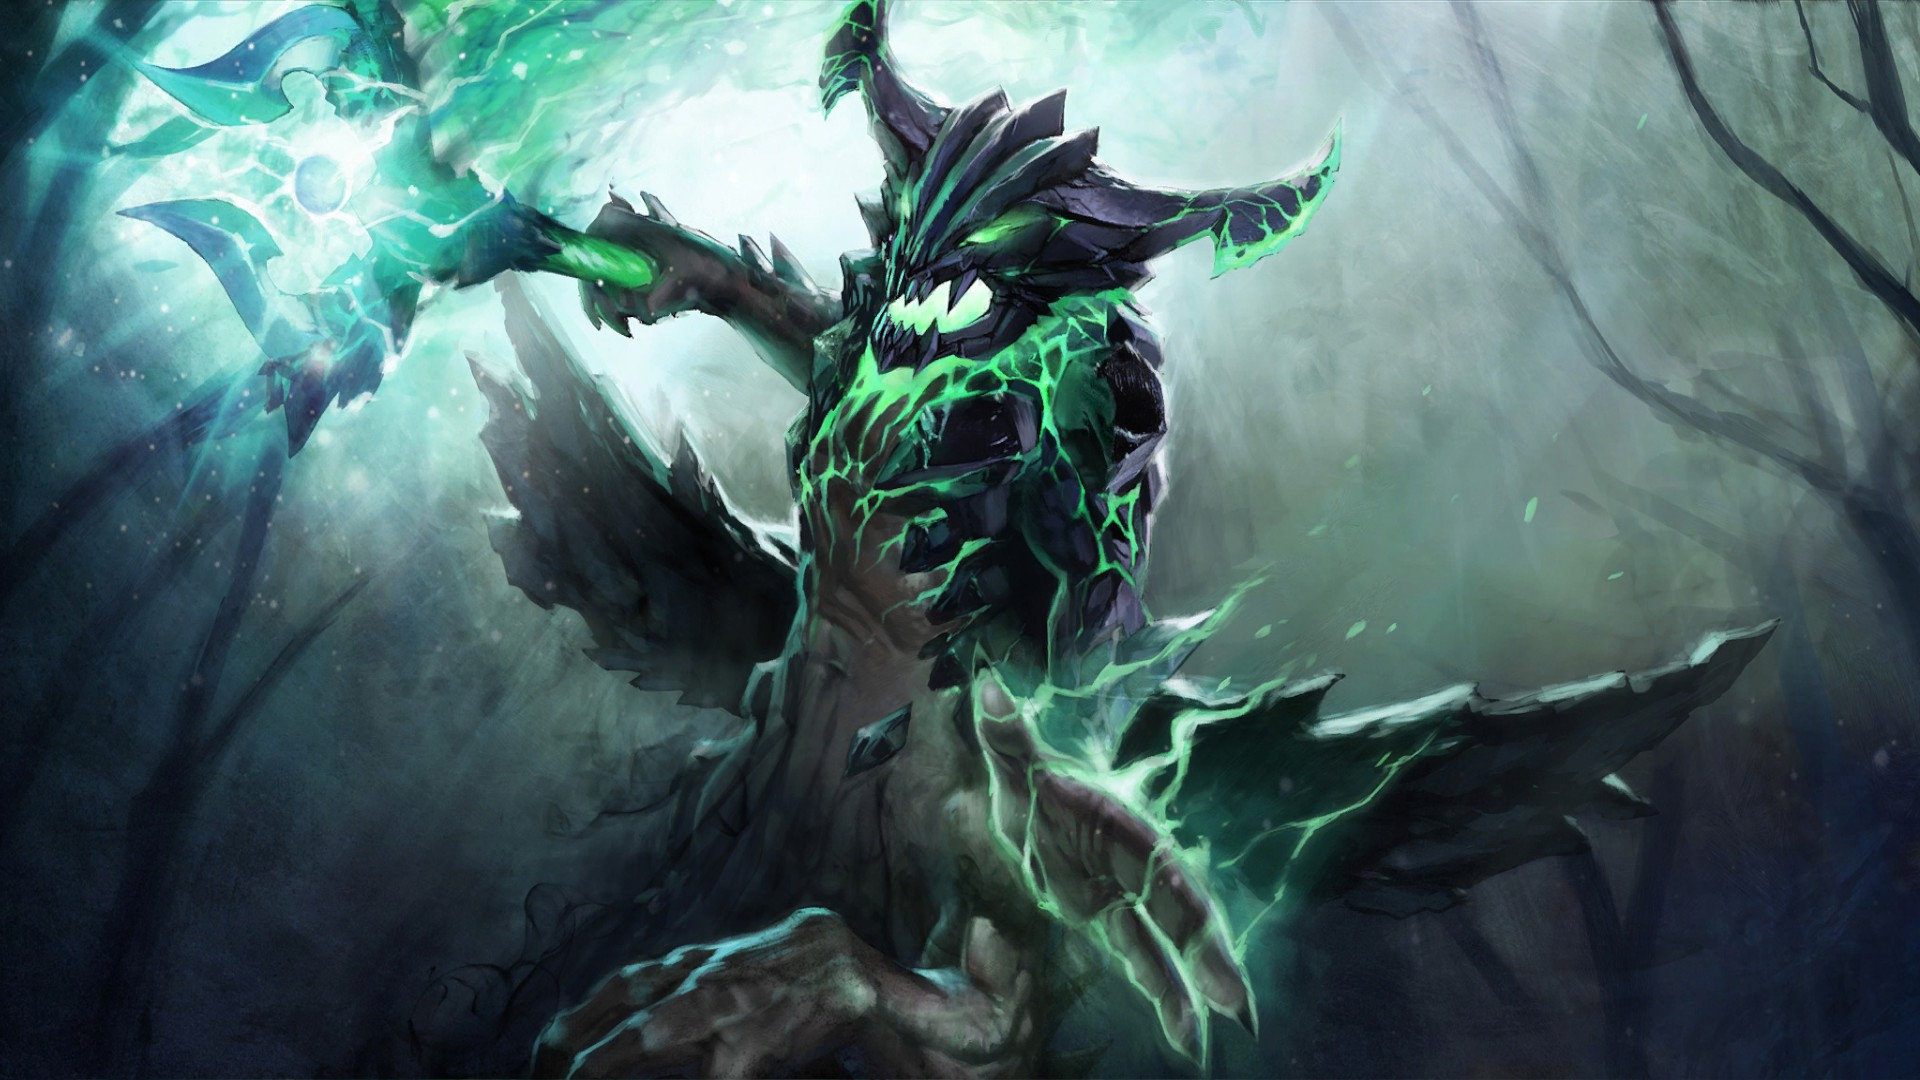 Dota 2 Outworld Devourer Guide | Build, Tips, and Strategy